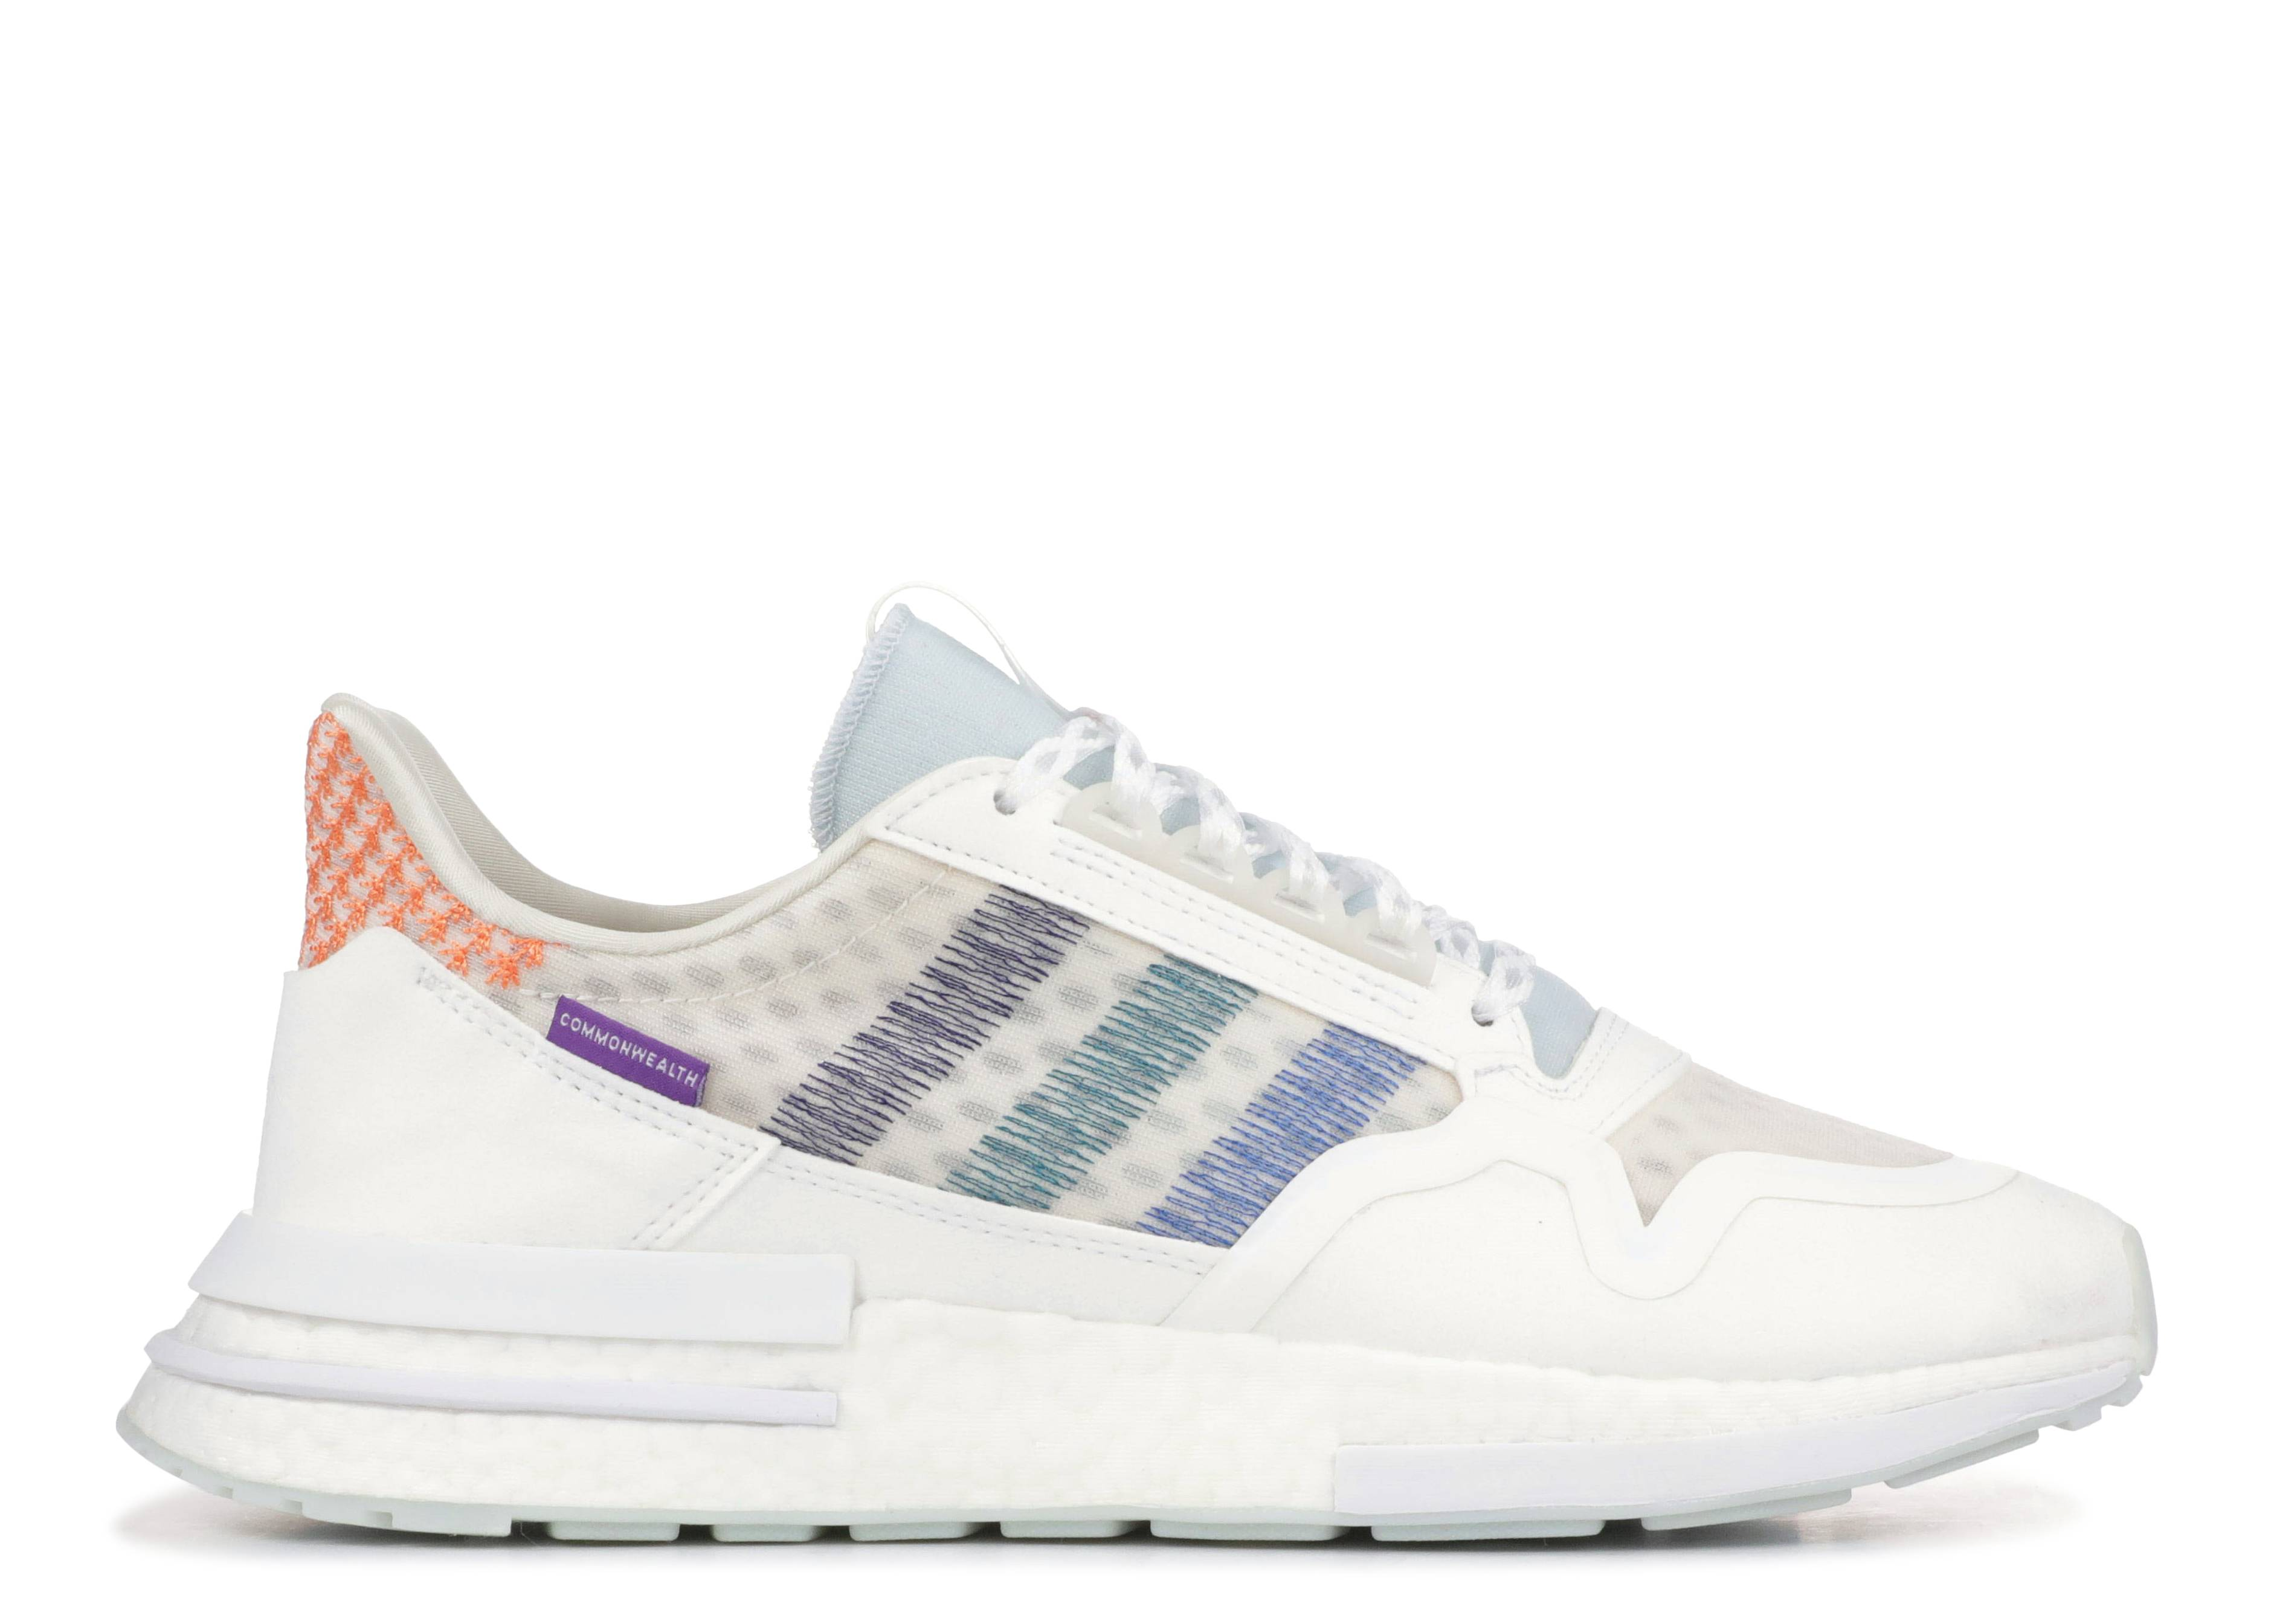 zx 500 rm commonwealth